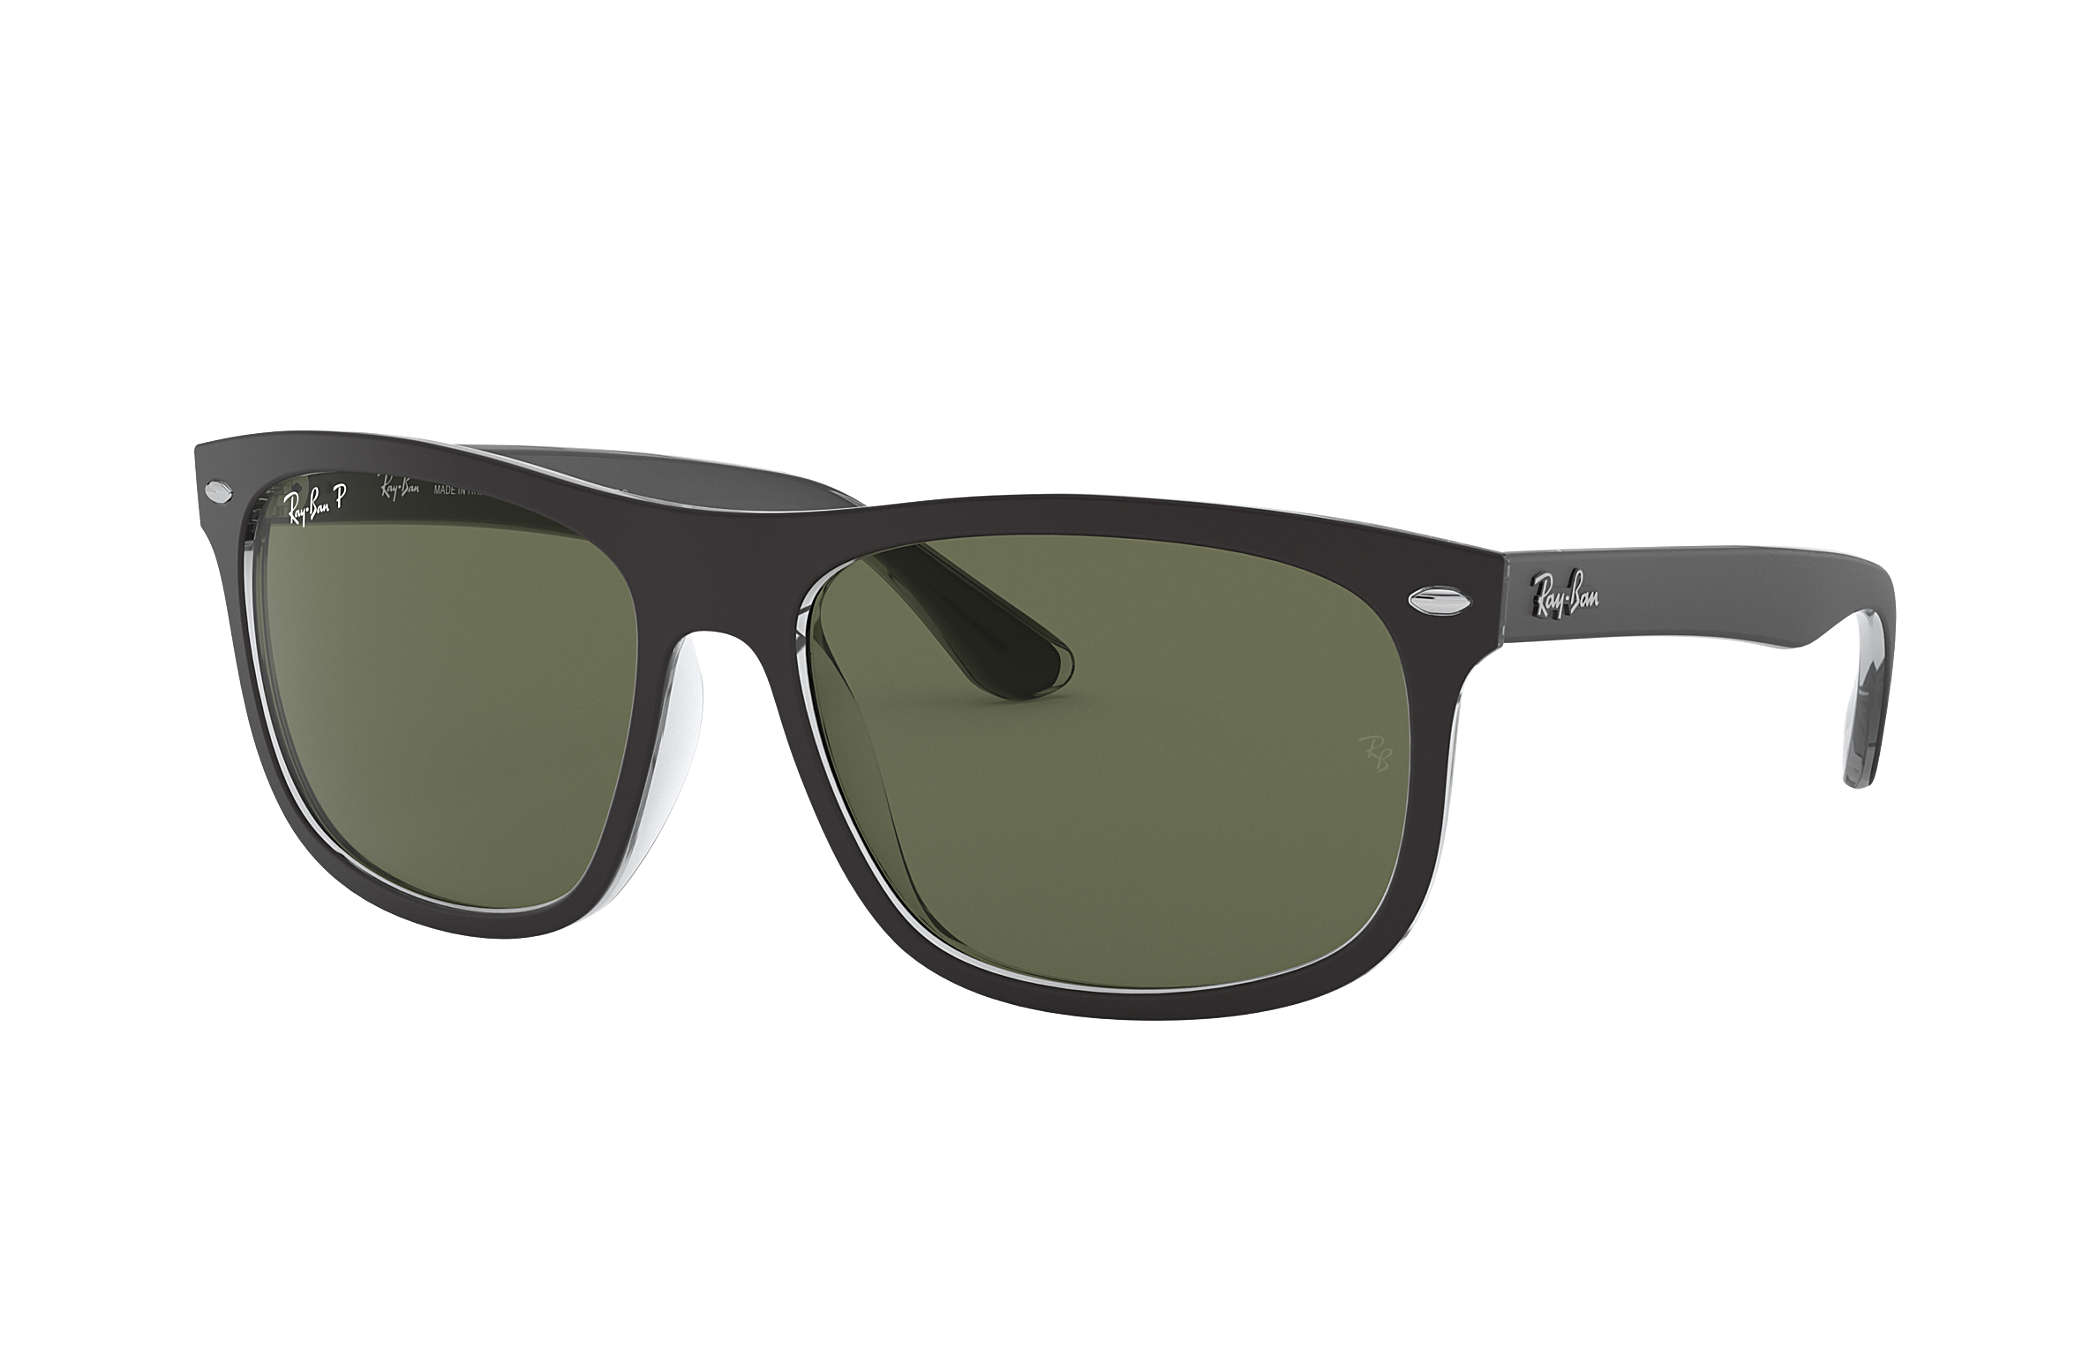 8f4d57cbbc Ray-Ban RB4068 Tortoise - Nylon - Brown Polarized Lenses ...